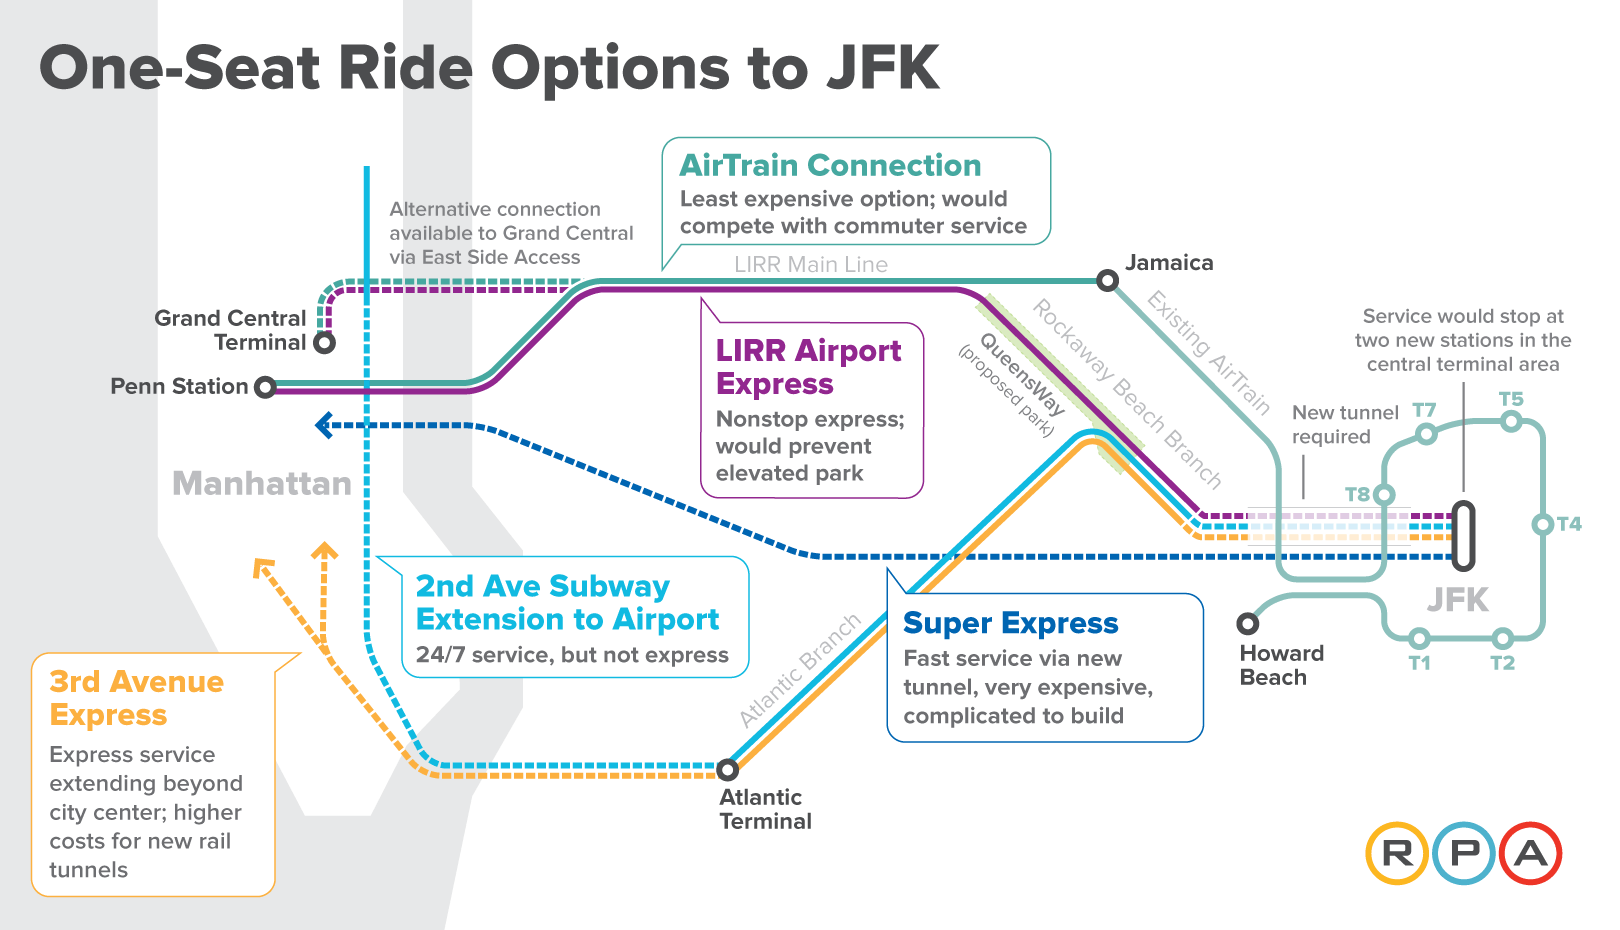 rpa-one-seat-ride-options-to-jfk